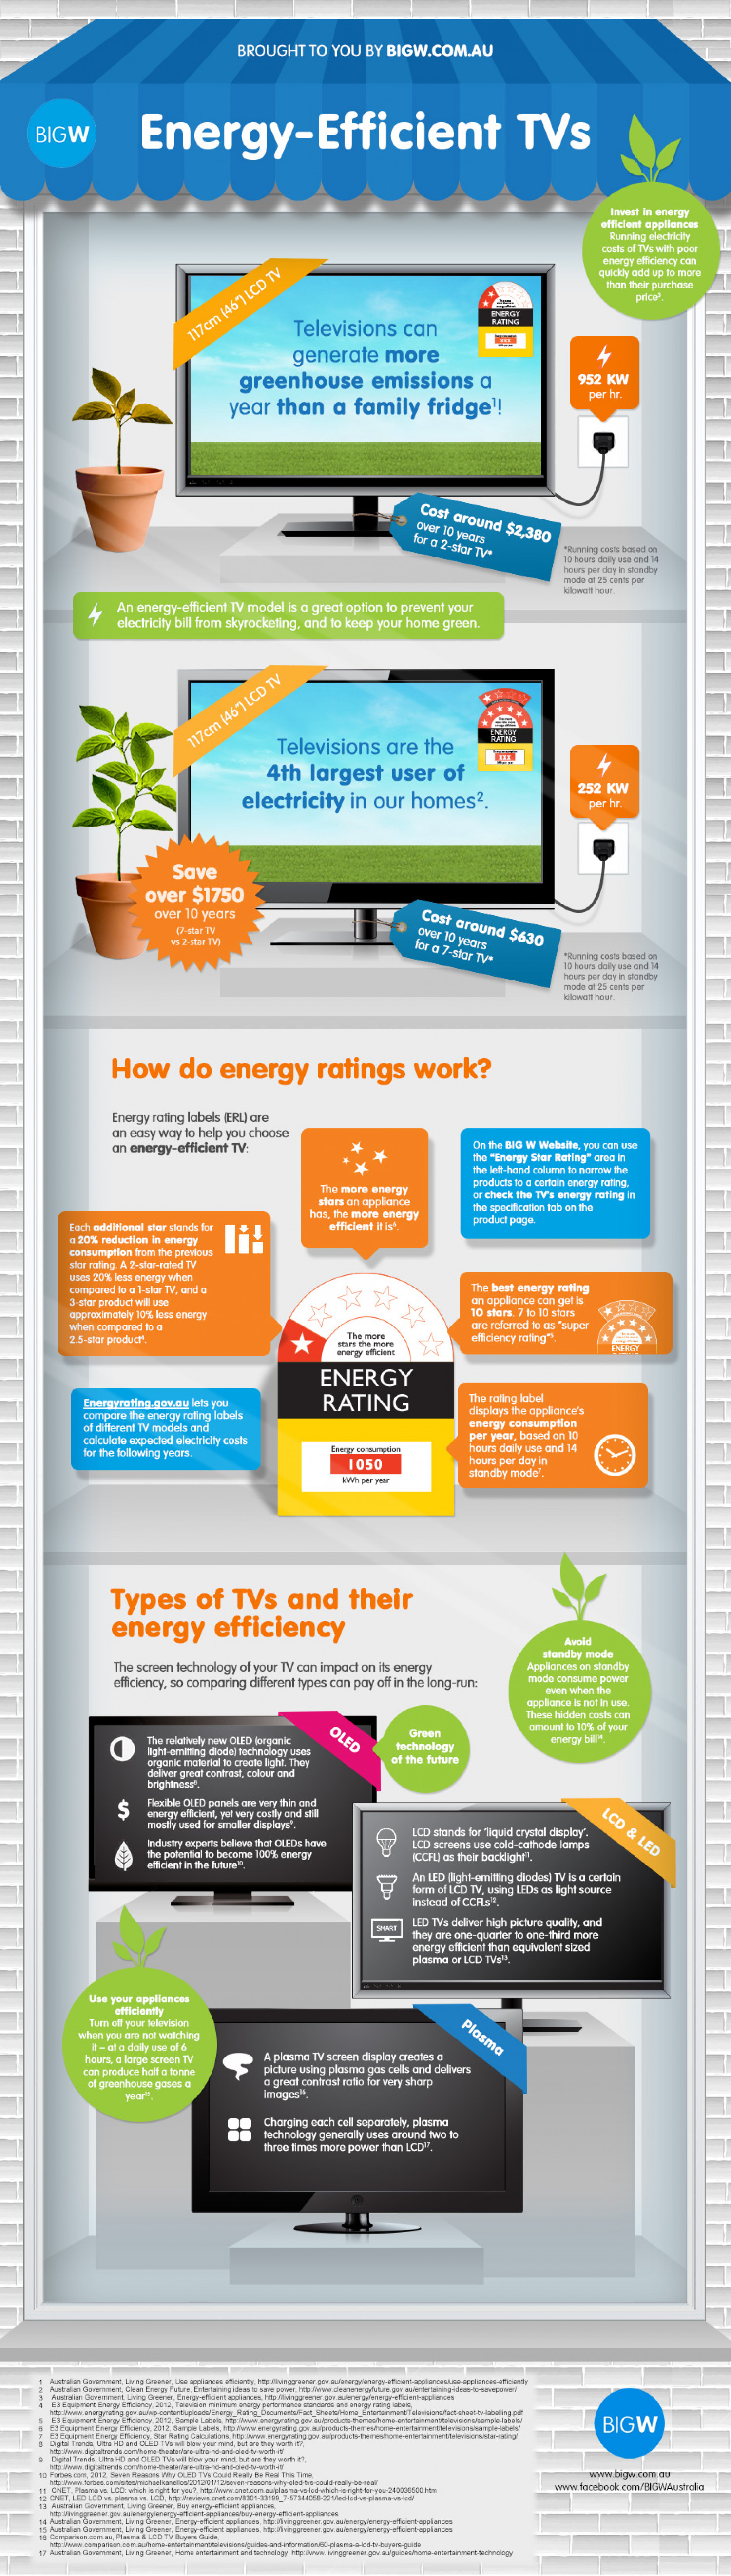 How to choose an energy efficient TV Infographic